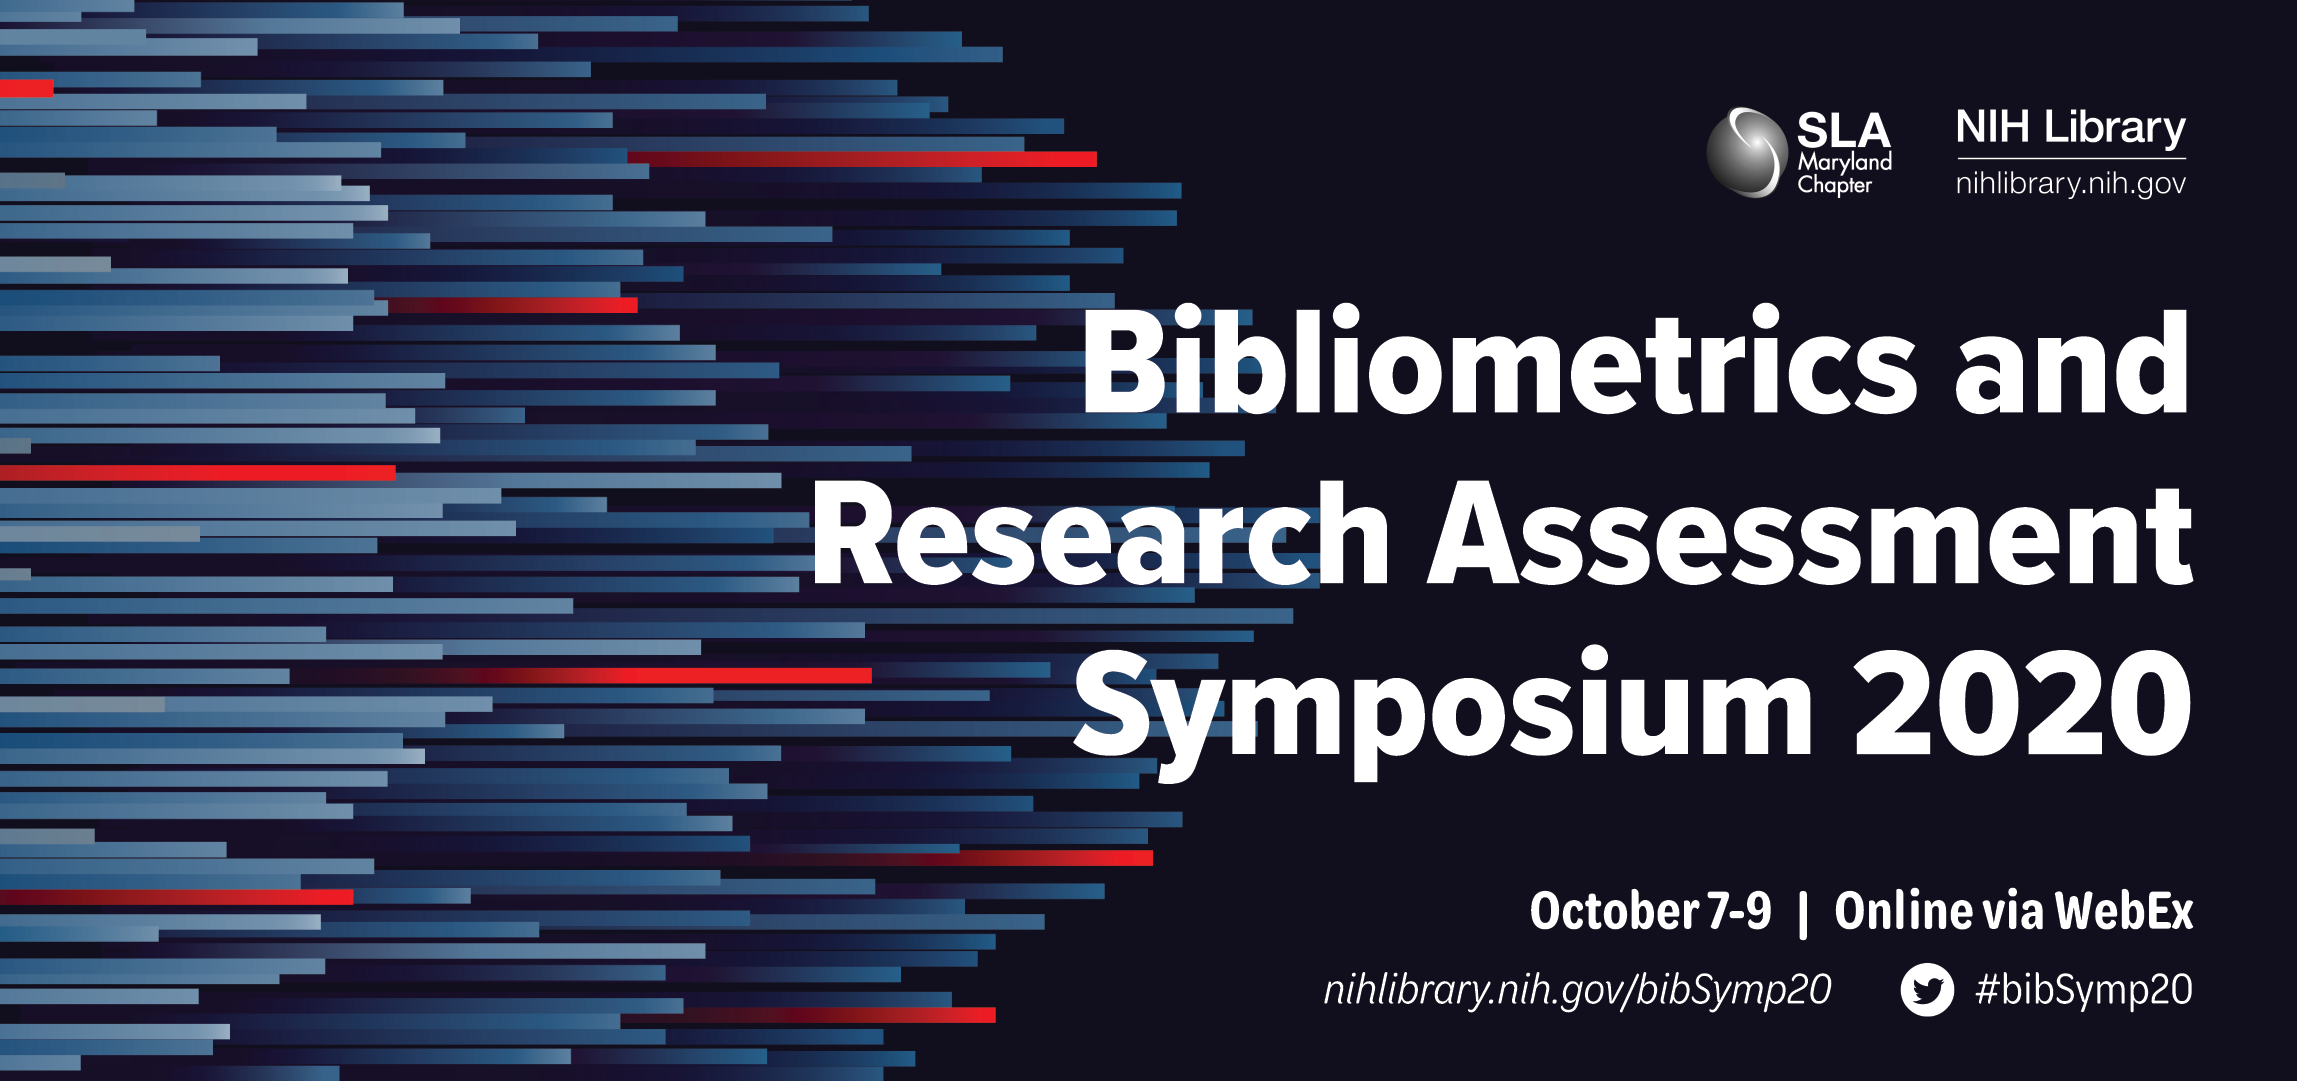 Bibliometrics and Research Assessment Symposium 2020